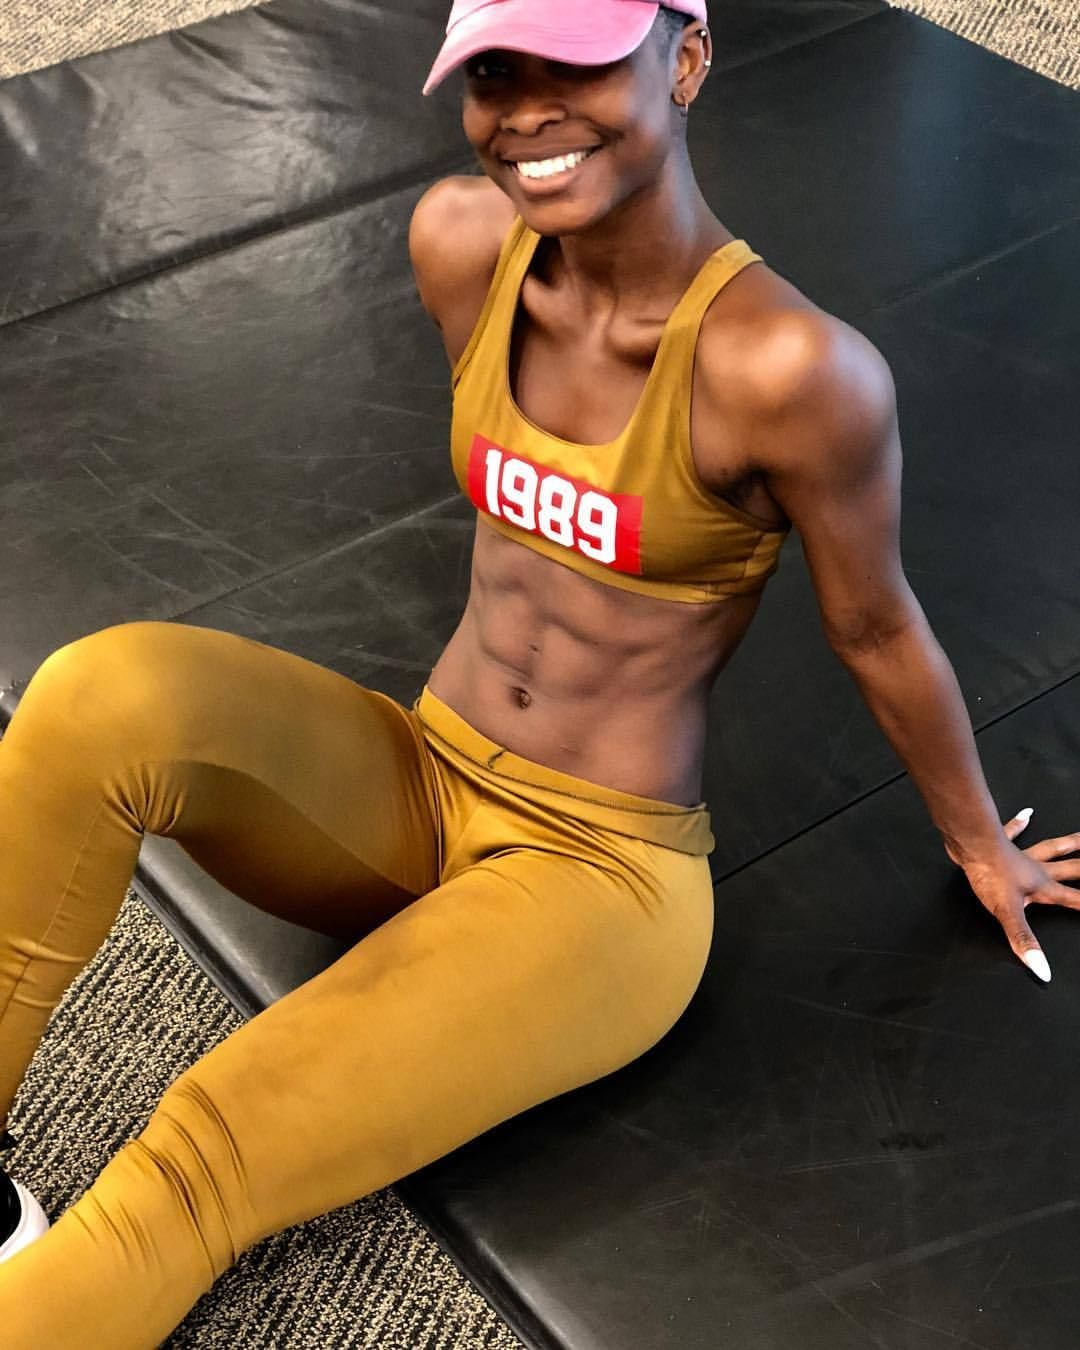 Health and Fitness Programs: Women s Fitness Models